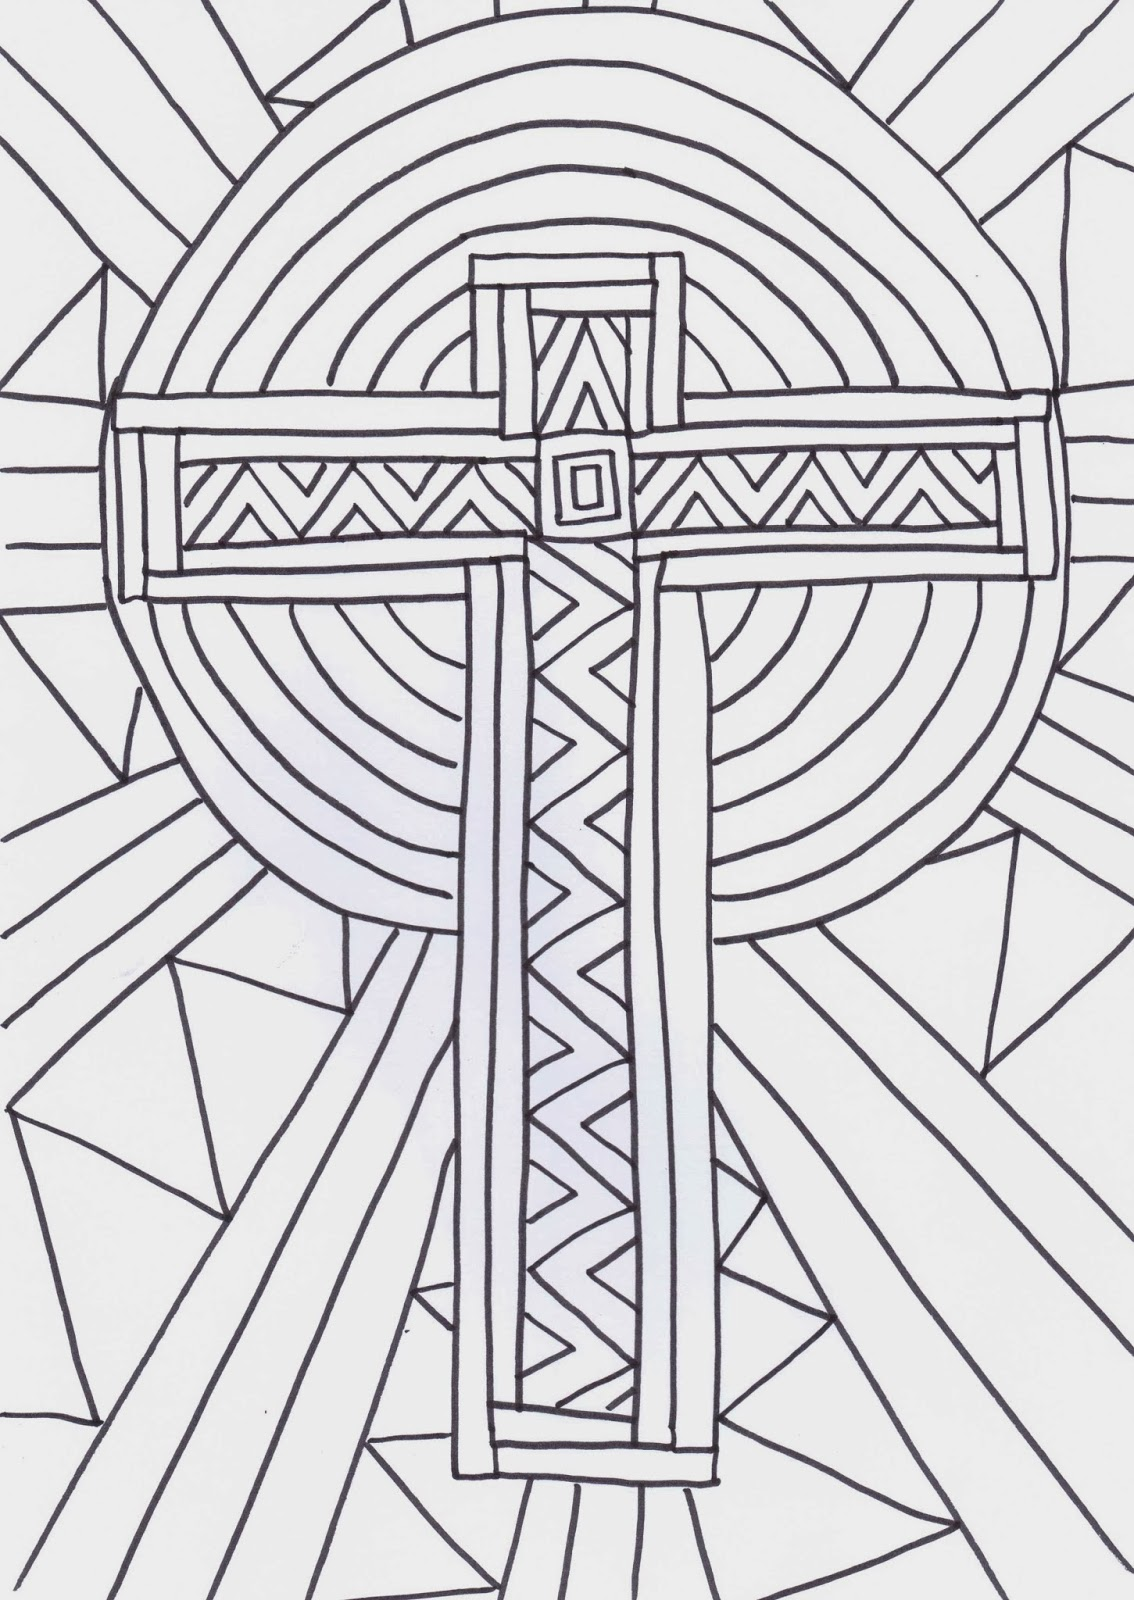 Flame creative children 39 s ministry cross reflective for Coloring pages of cross